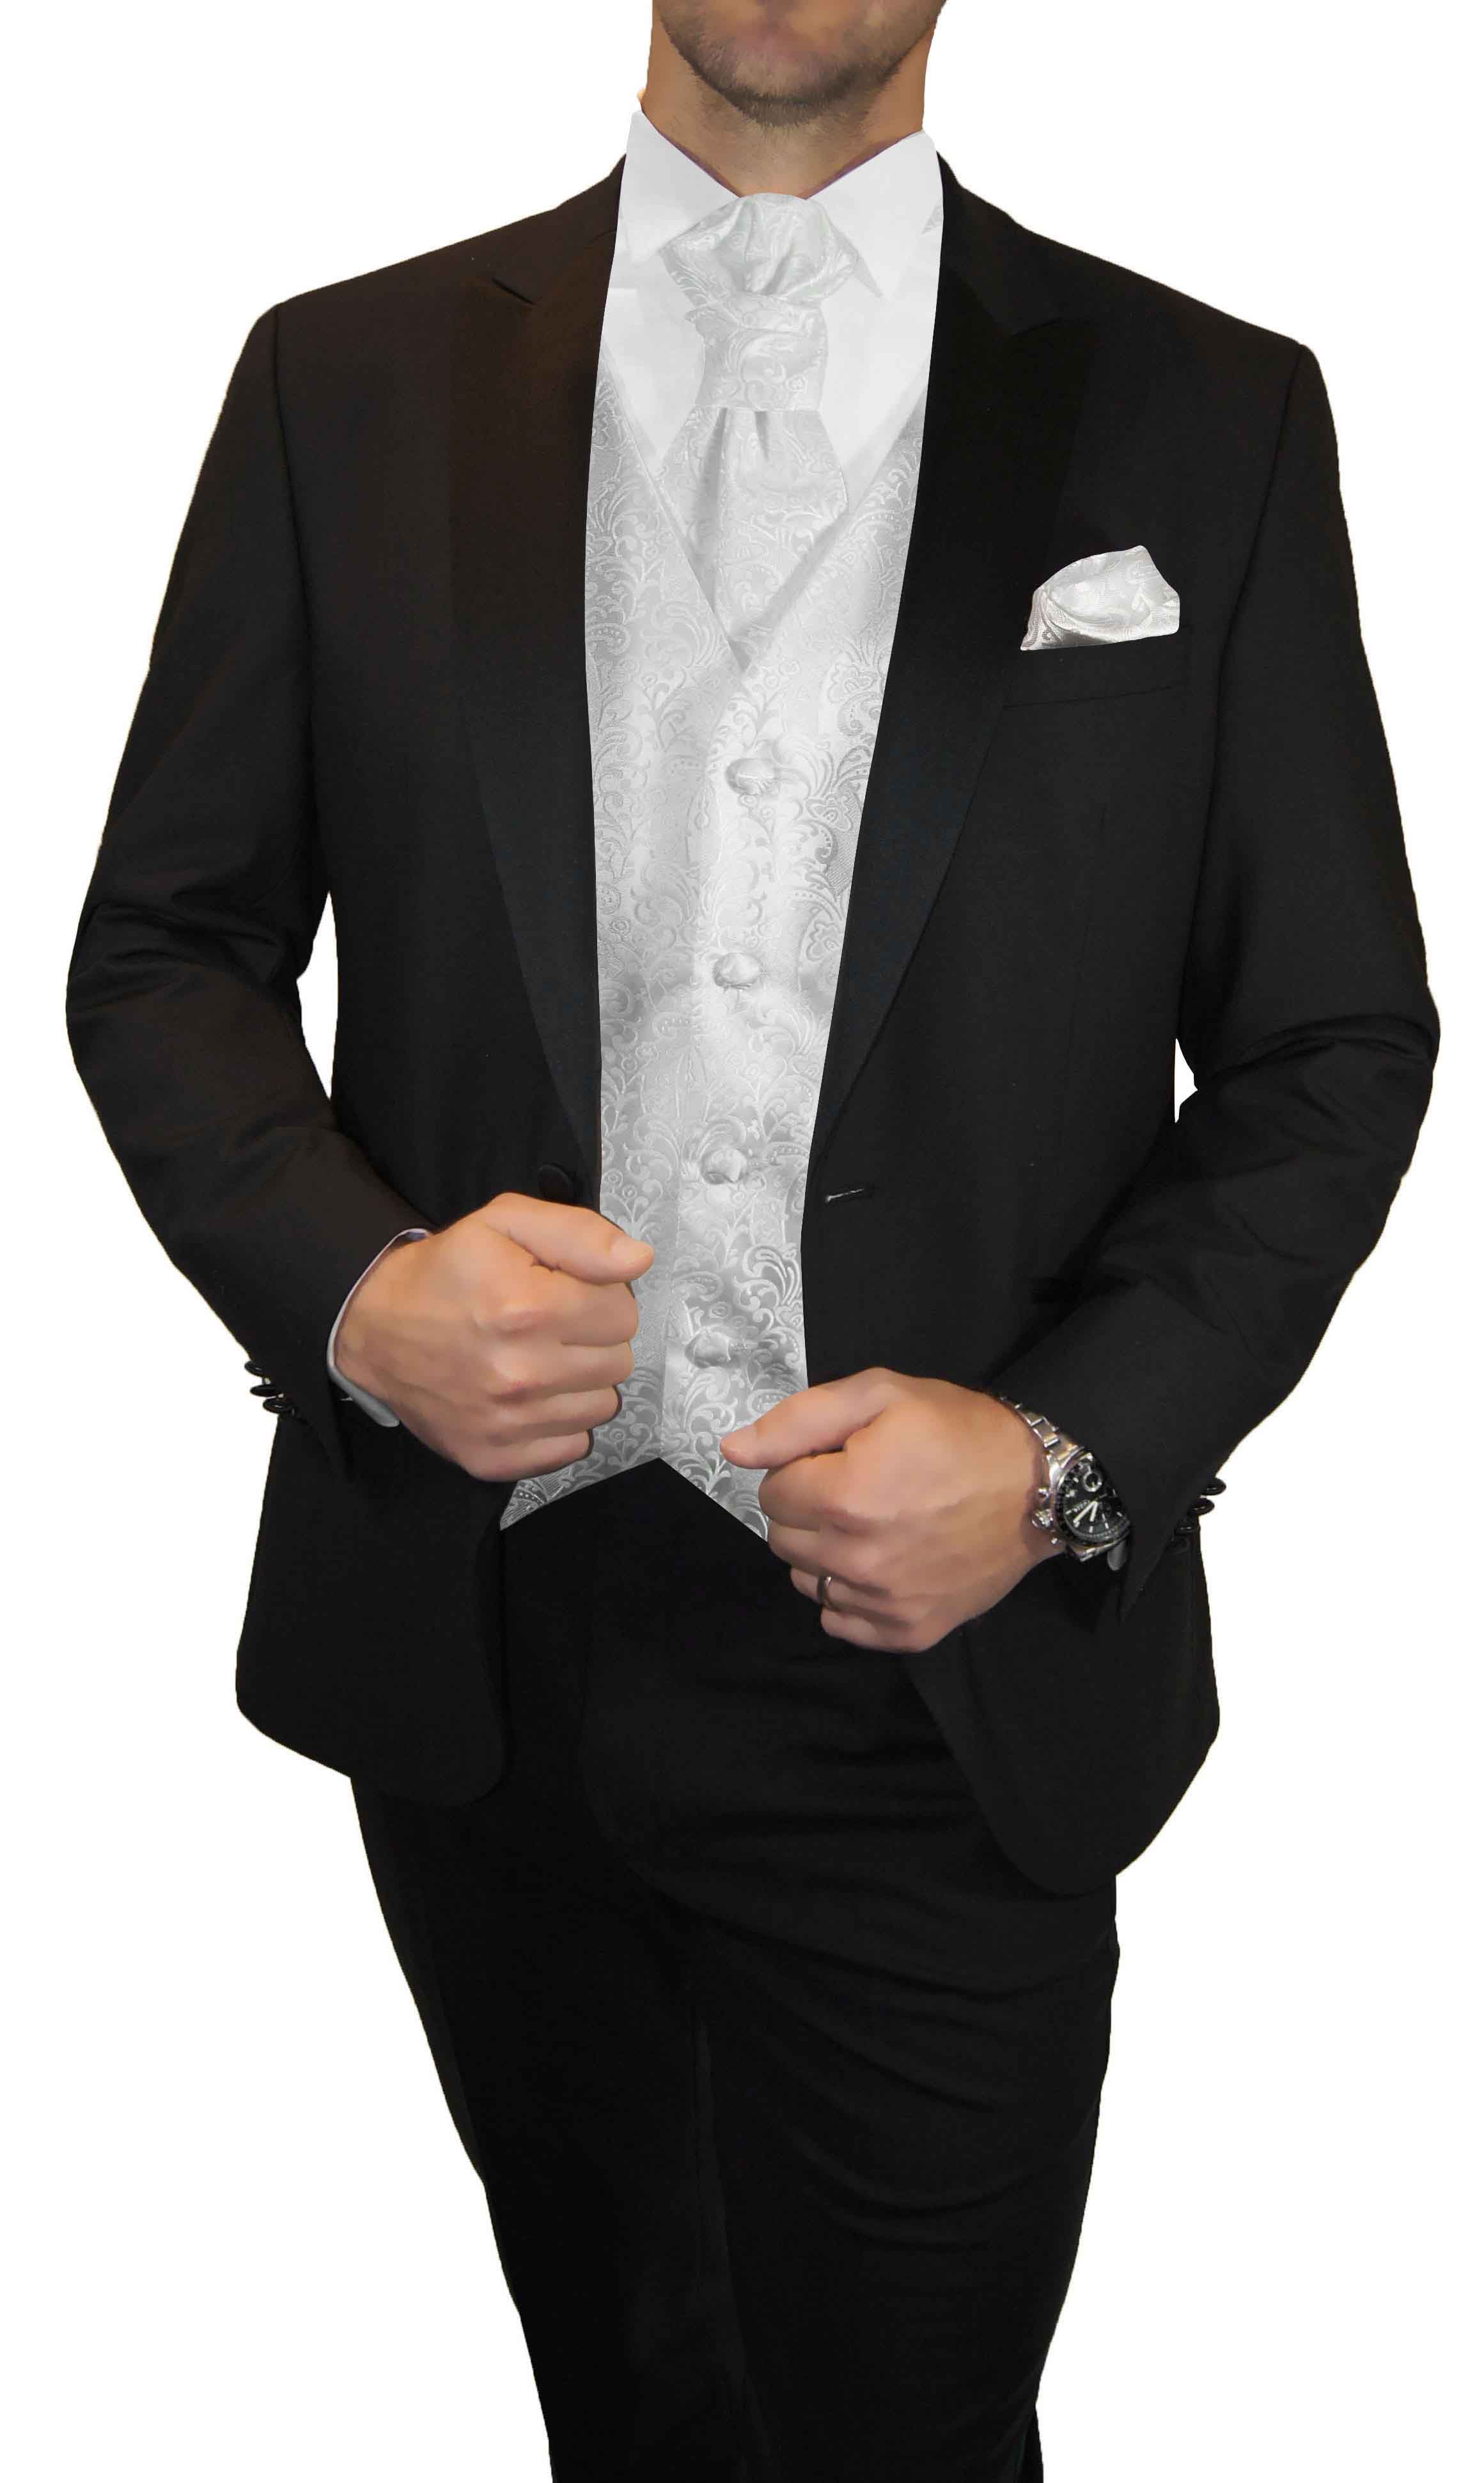 Wedding Tuxedo Suit Set 6pcs Black Slim Fit Incl Wedding Vest White Baroque